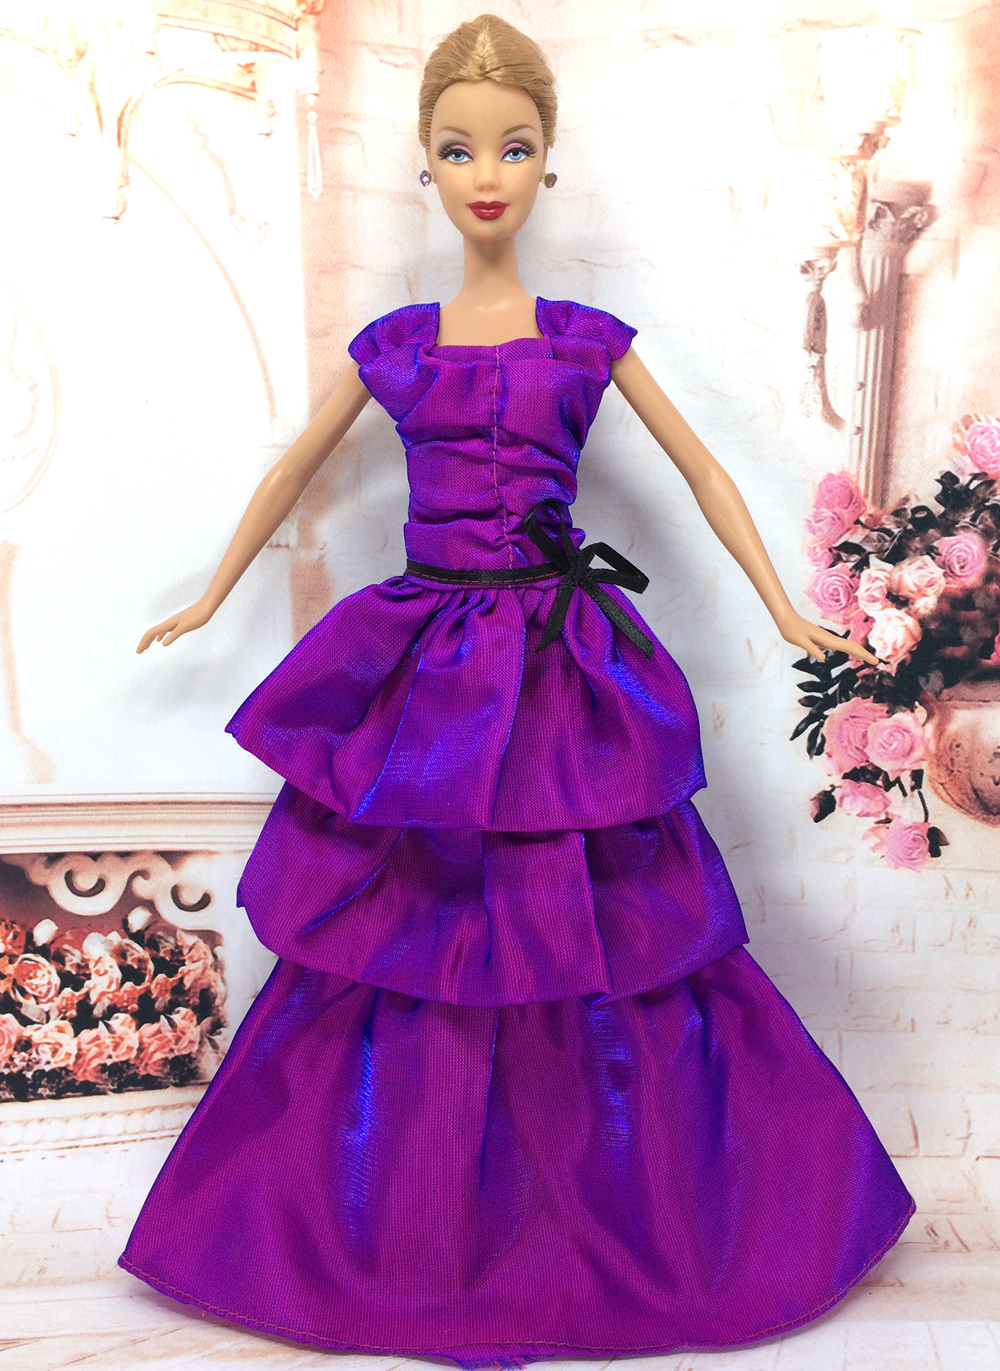 Attractive barbie doll wedding dress pictures princess for Barbie wedding dresses for sale